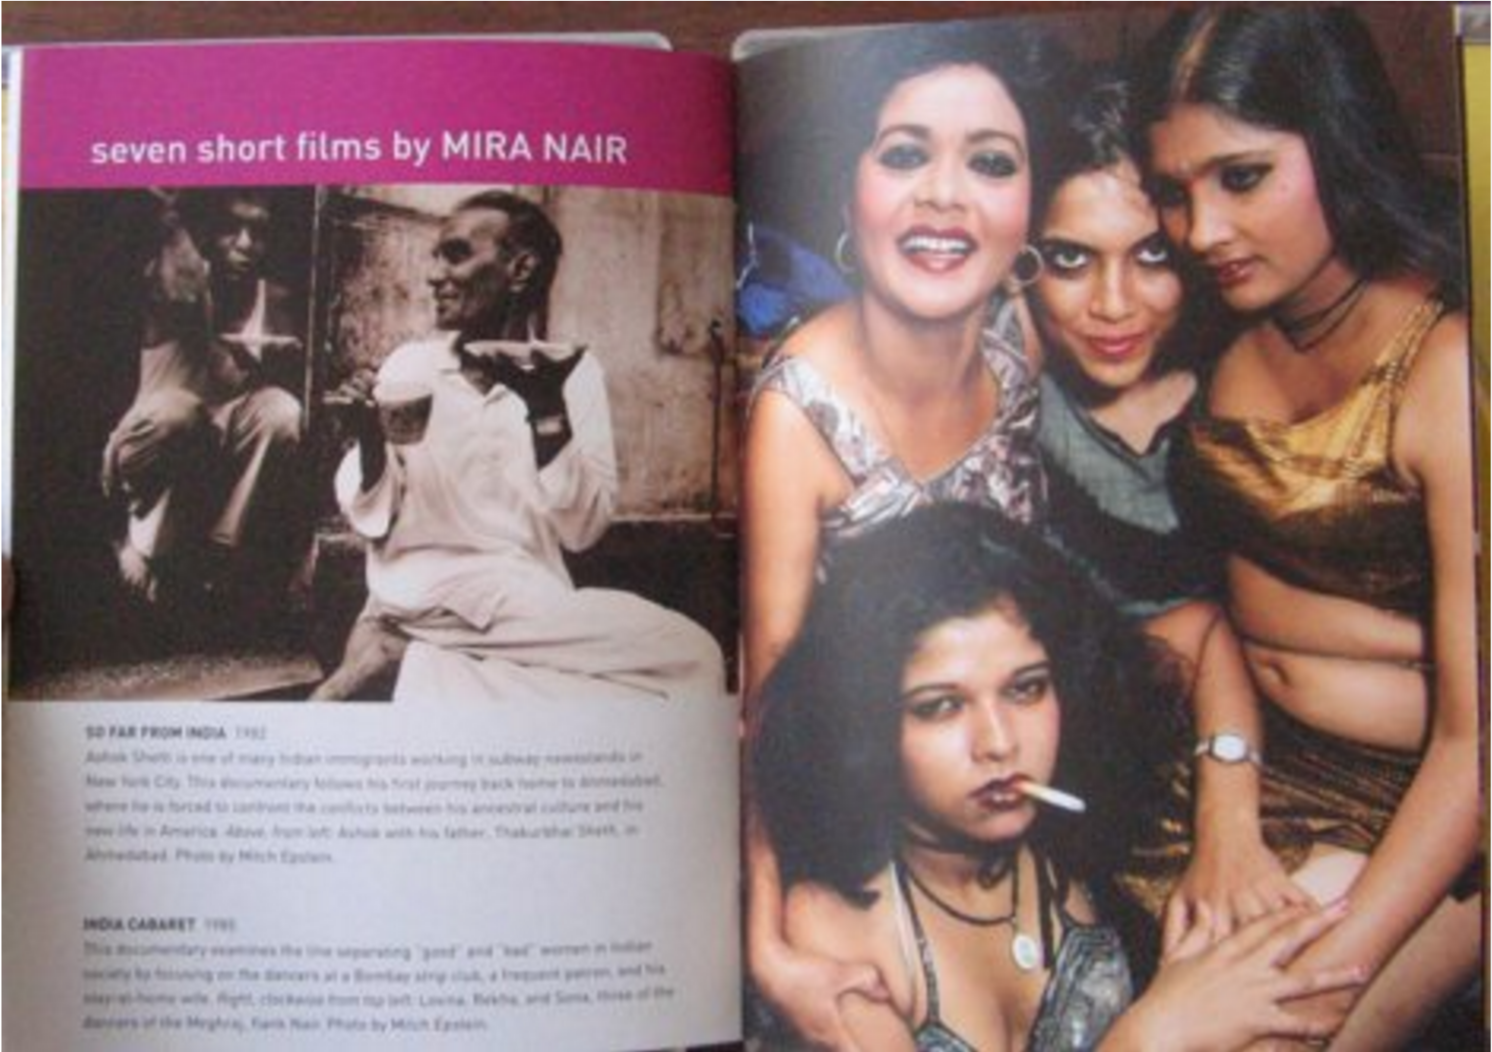 Open magazine with page title 'seven short films by Mira Nair'